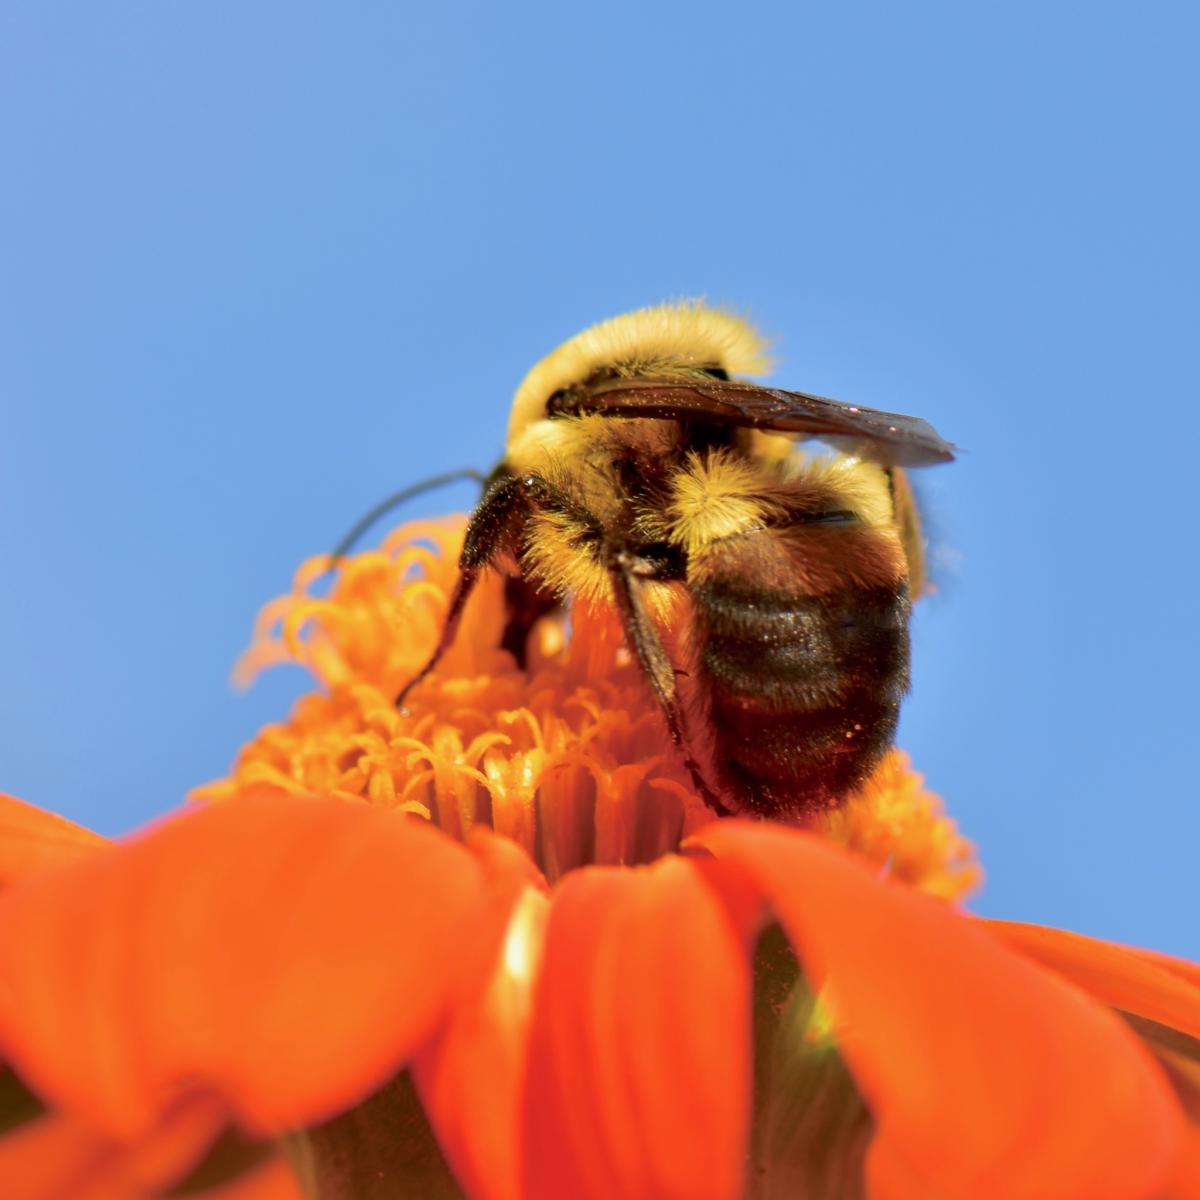 Bumble bee on orange flower